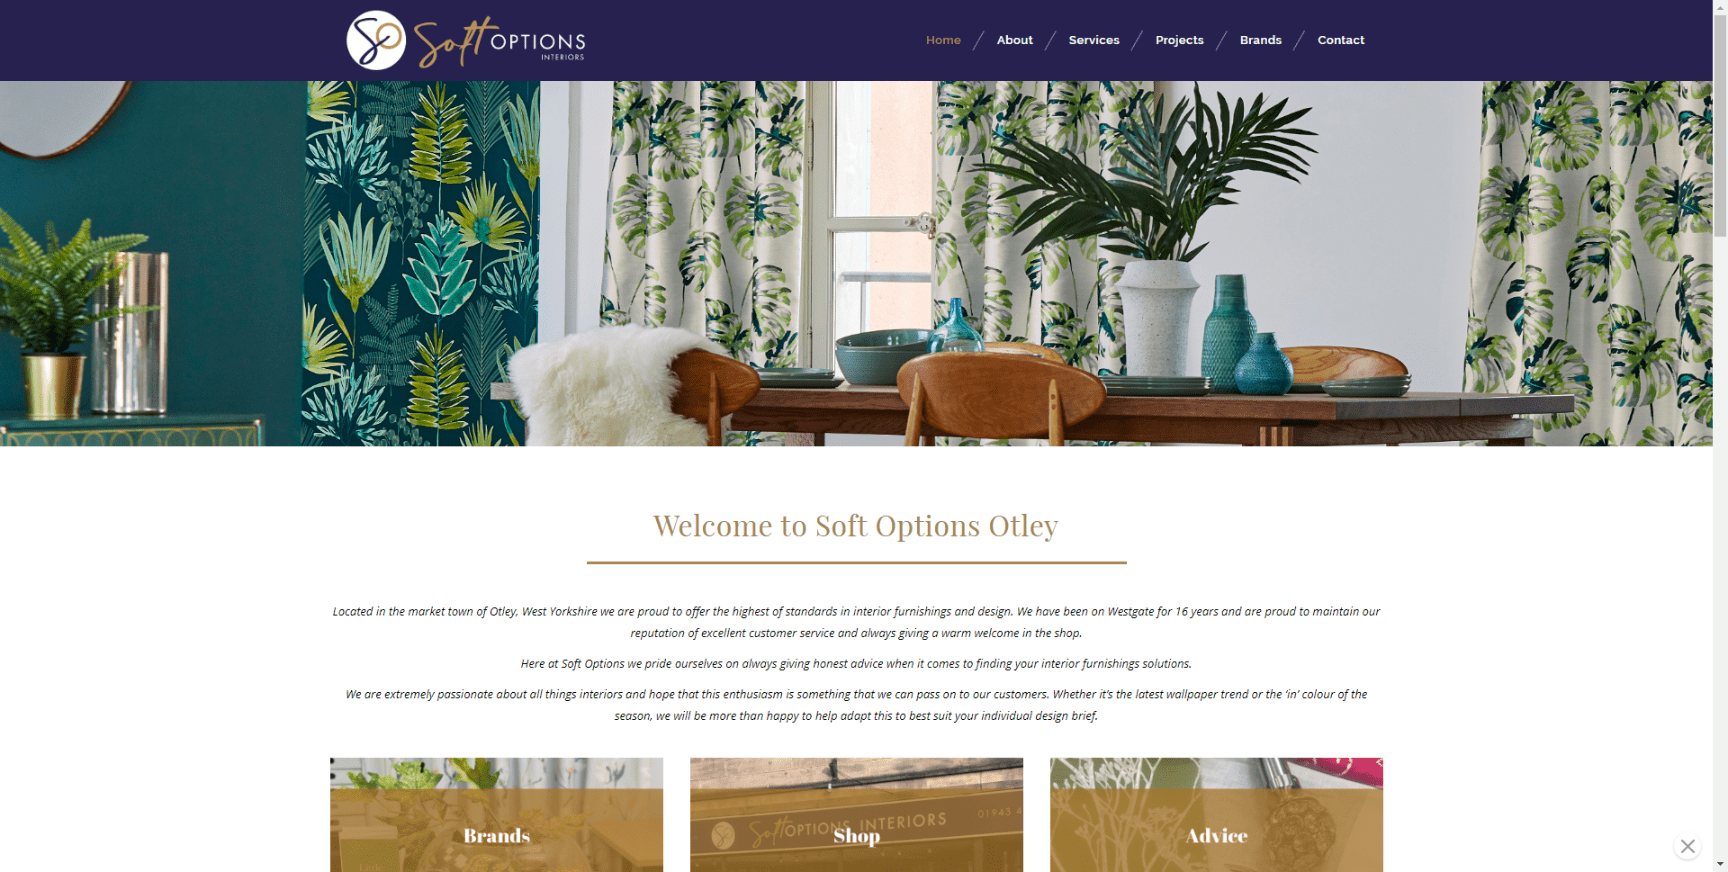 RedRite Website Build of Soft Options Otley